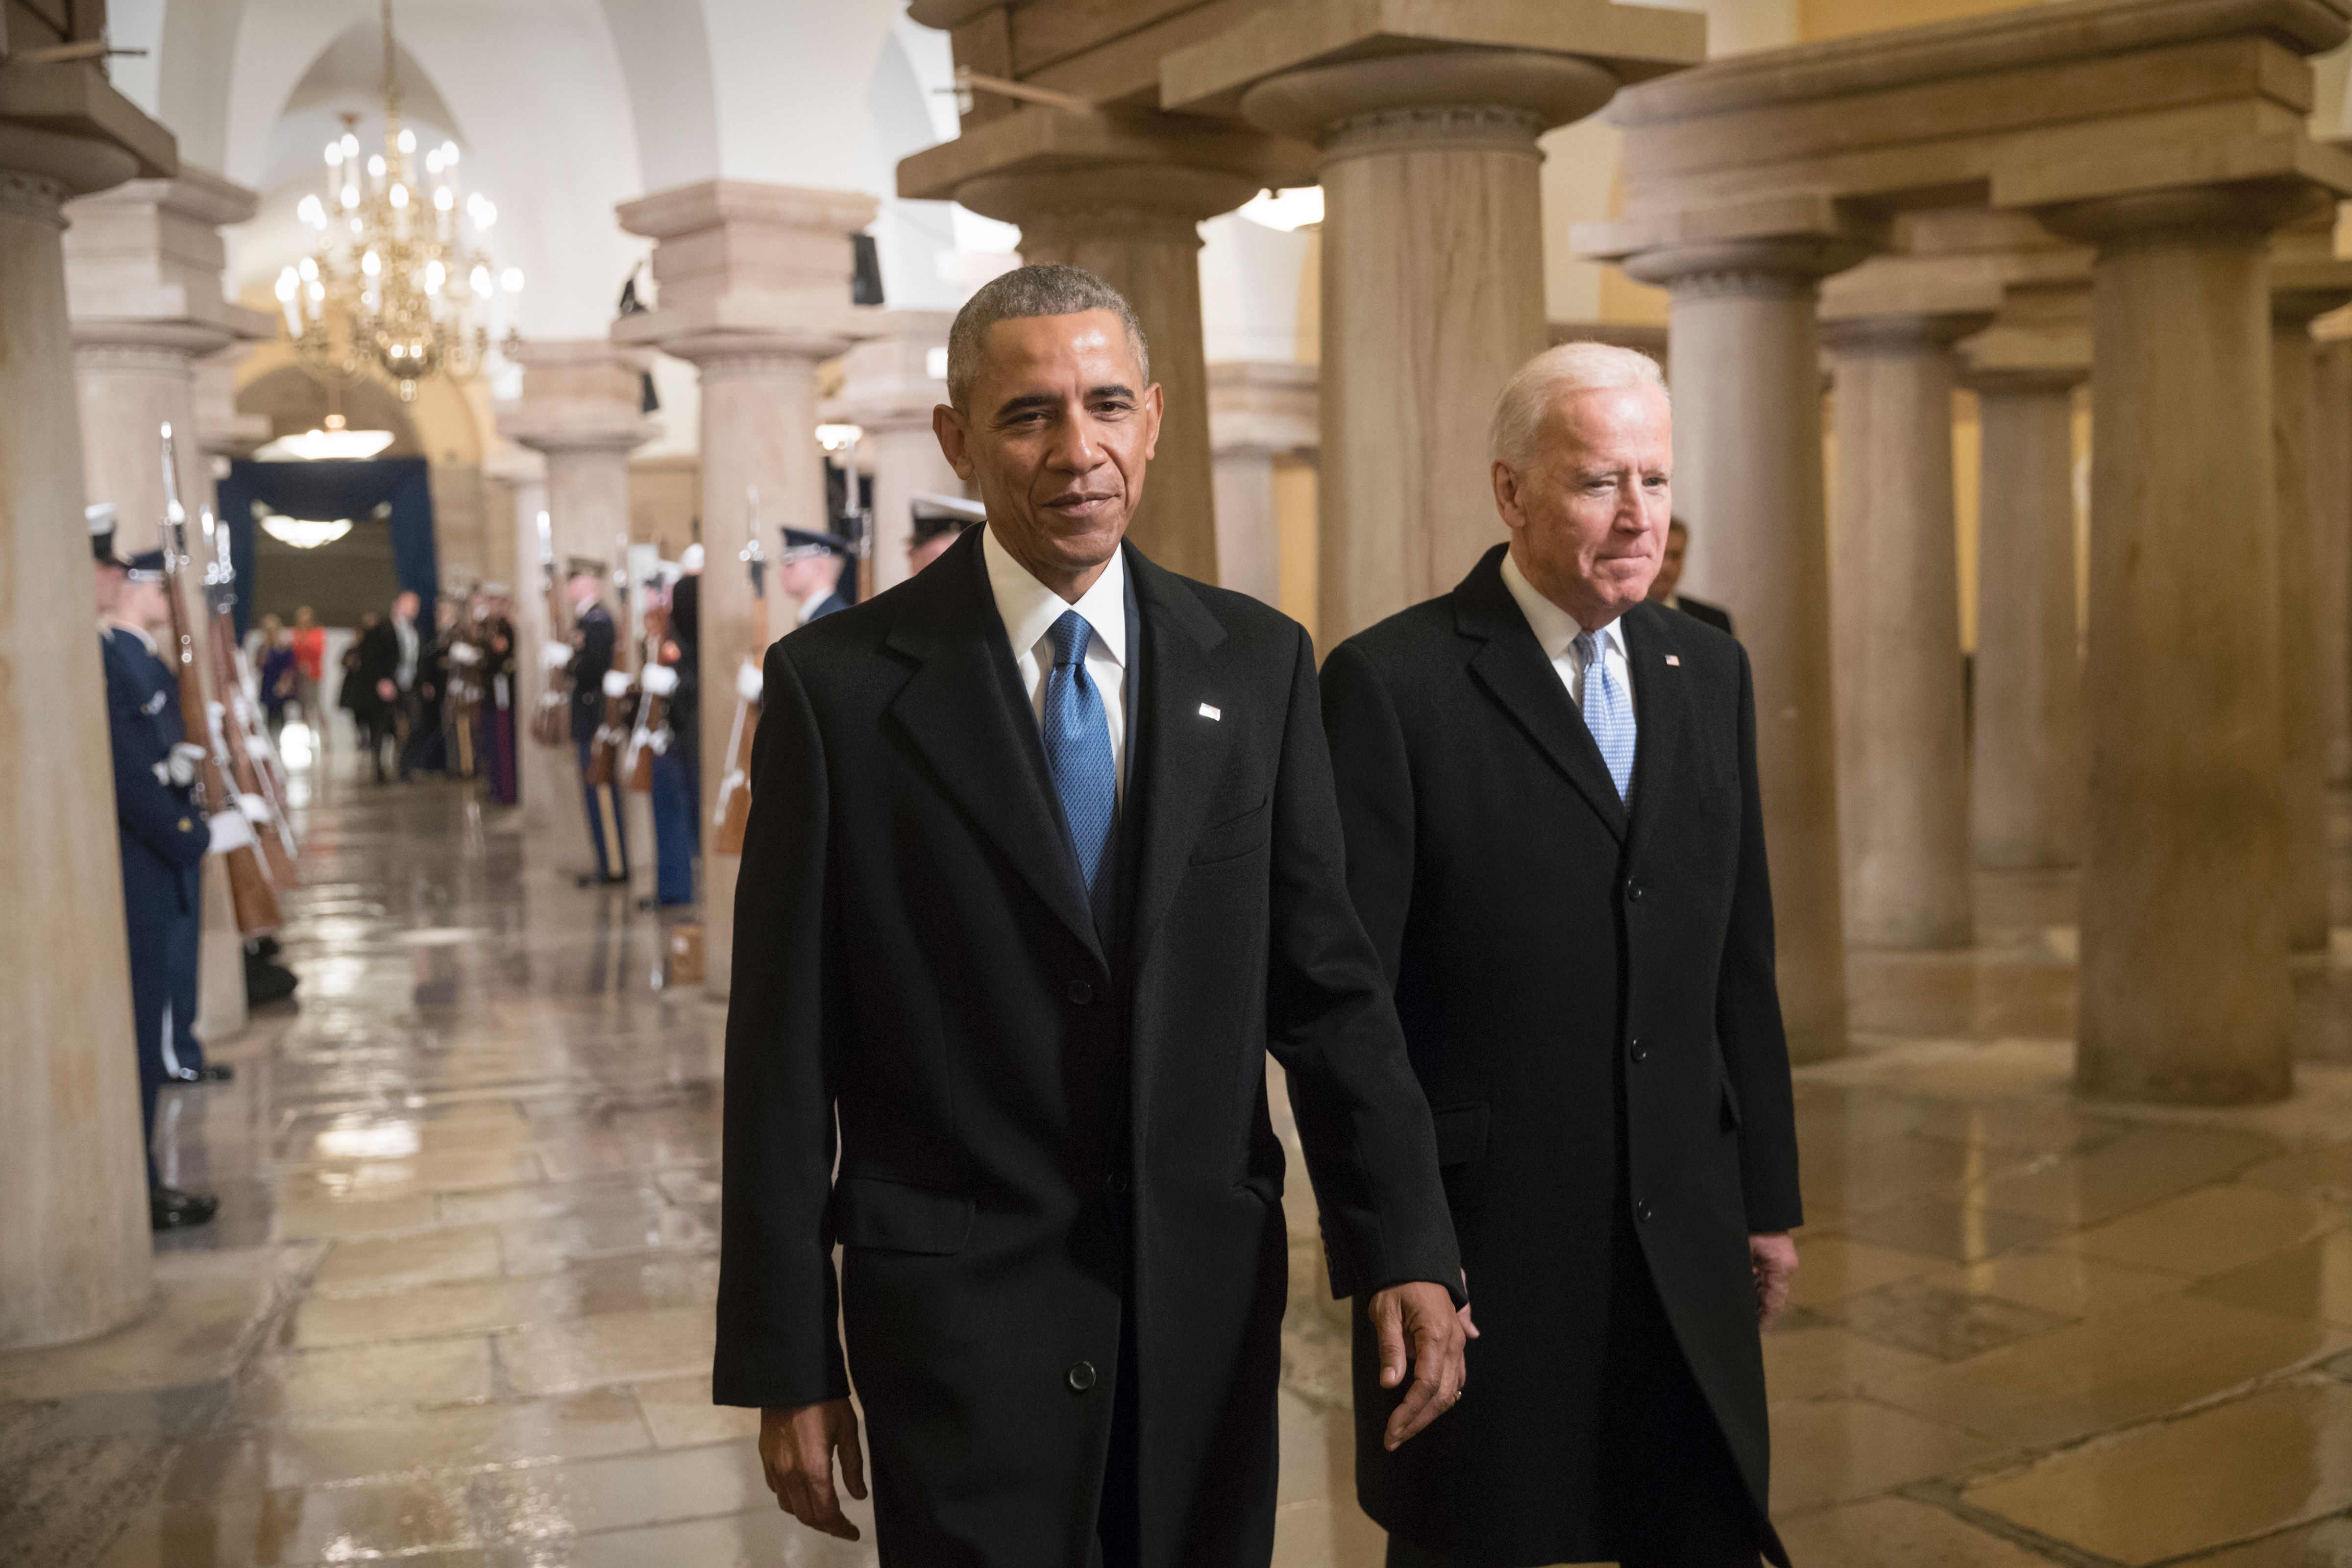 Barack Obama and Joe Biden walk through the Crypt of the Capitol for Donald Trump's inauguration ceremony (J. Scott Applewhite/AFP/Getty Images)